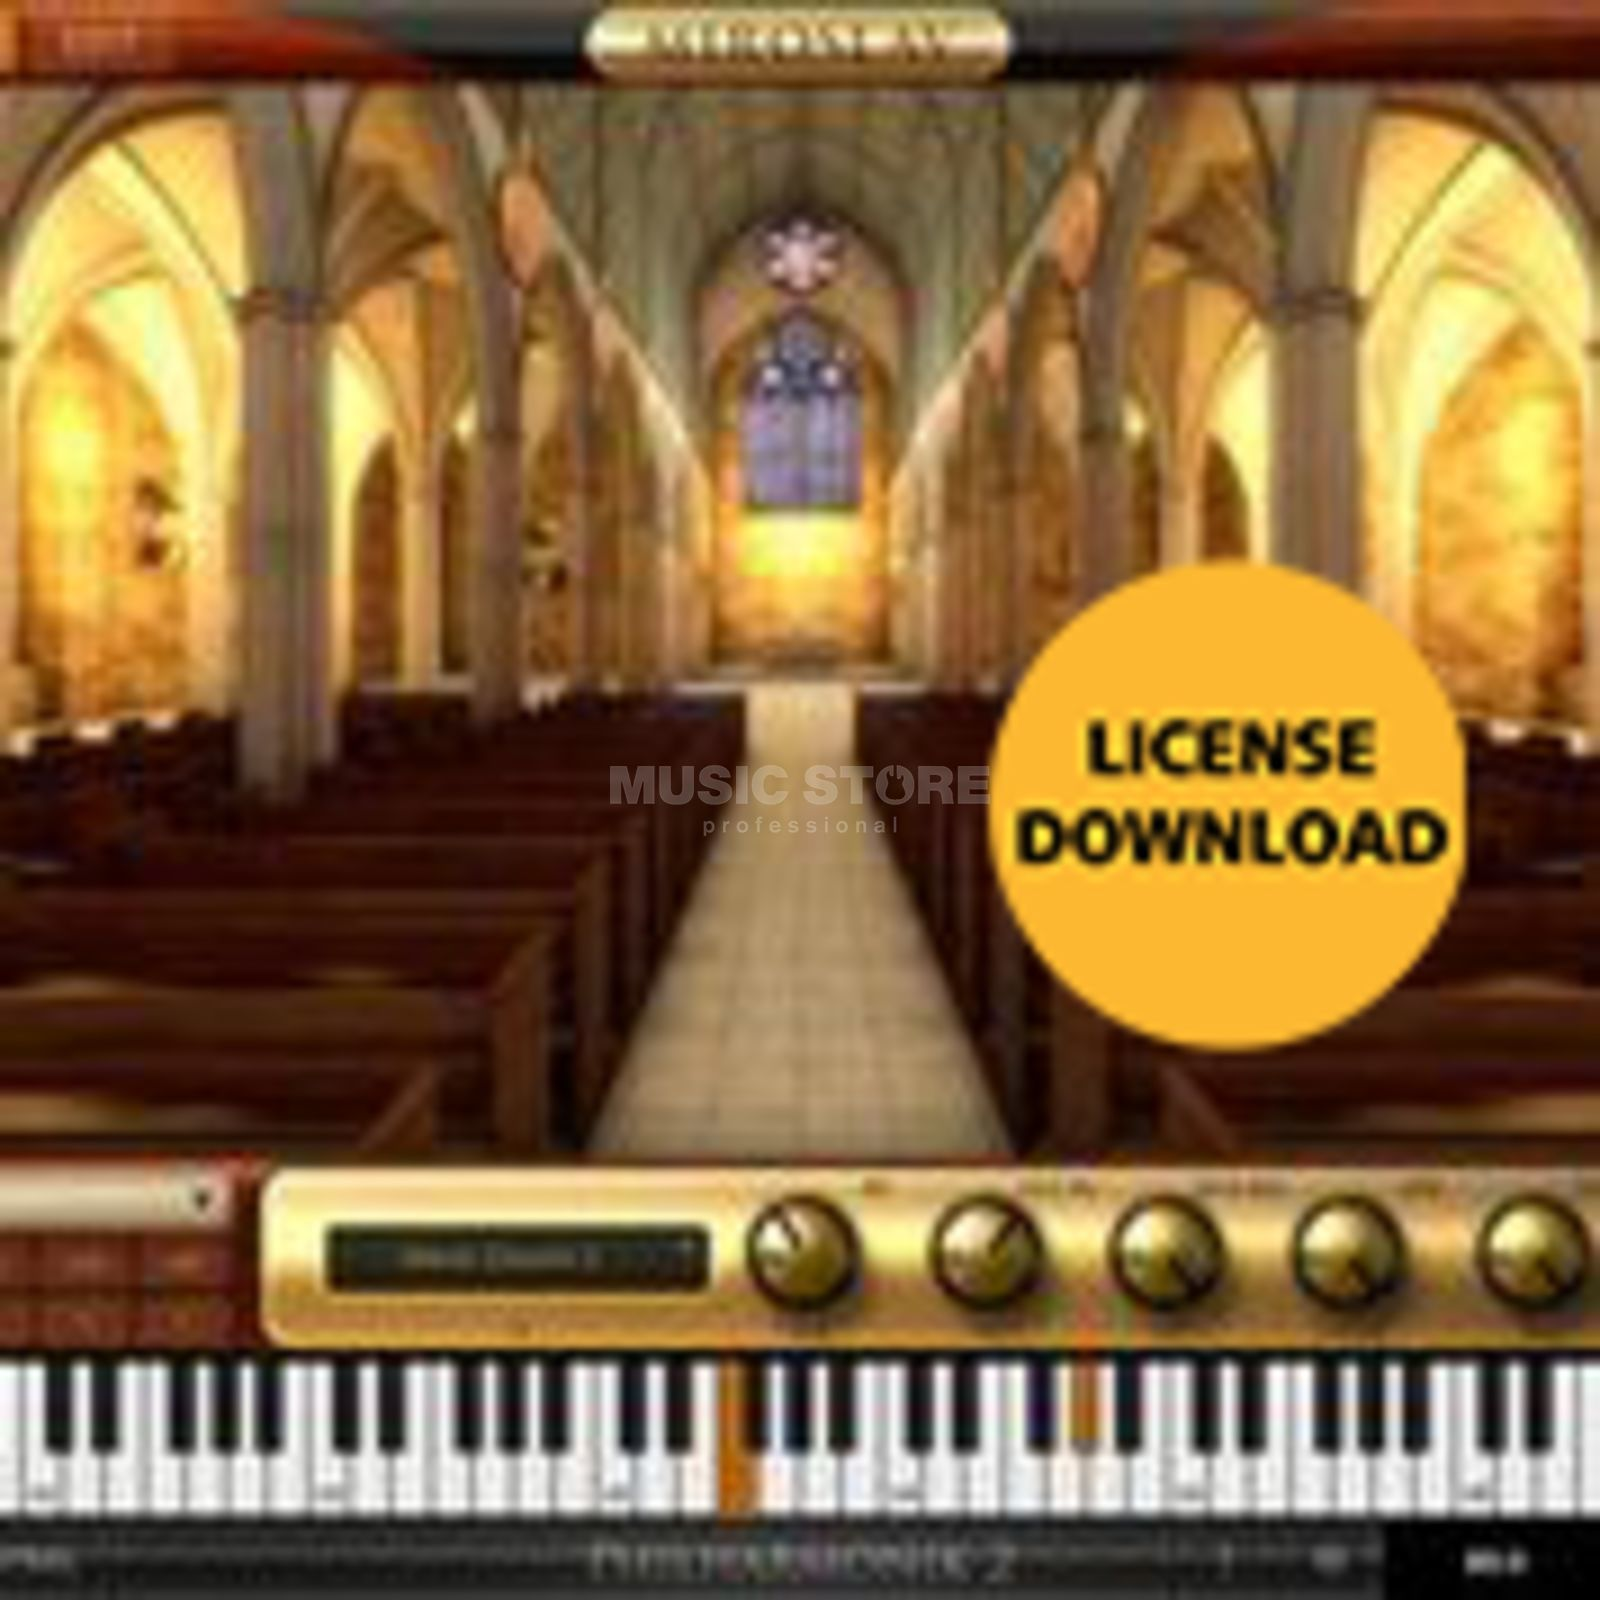 IK Multimedia Miroslav Philharmonik 2CE License Code Product Image